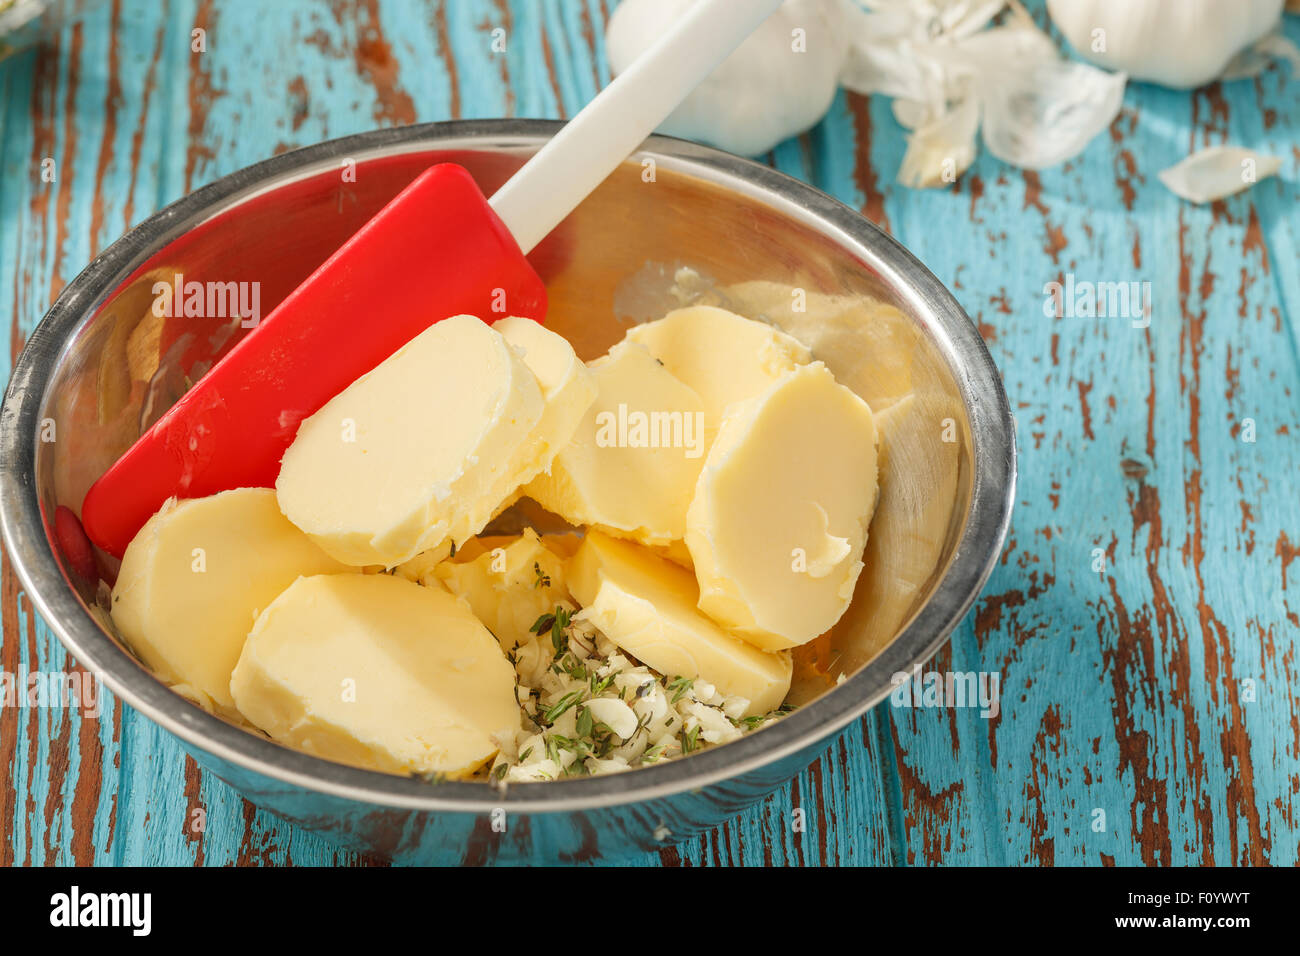 compound butter ingredients herb coriander garlic lemon fresh green onion homemade italian food tasty - Stock Image